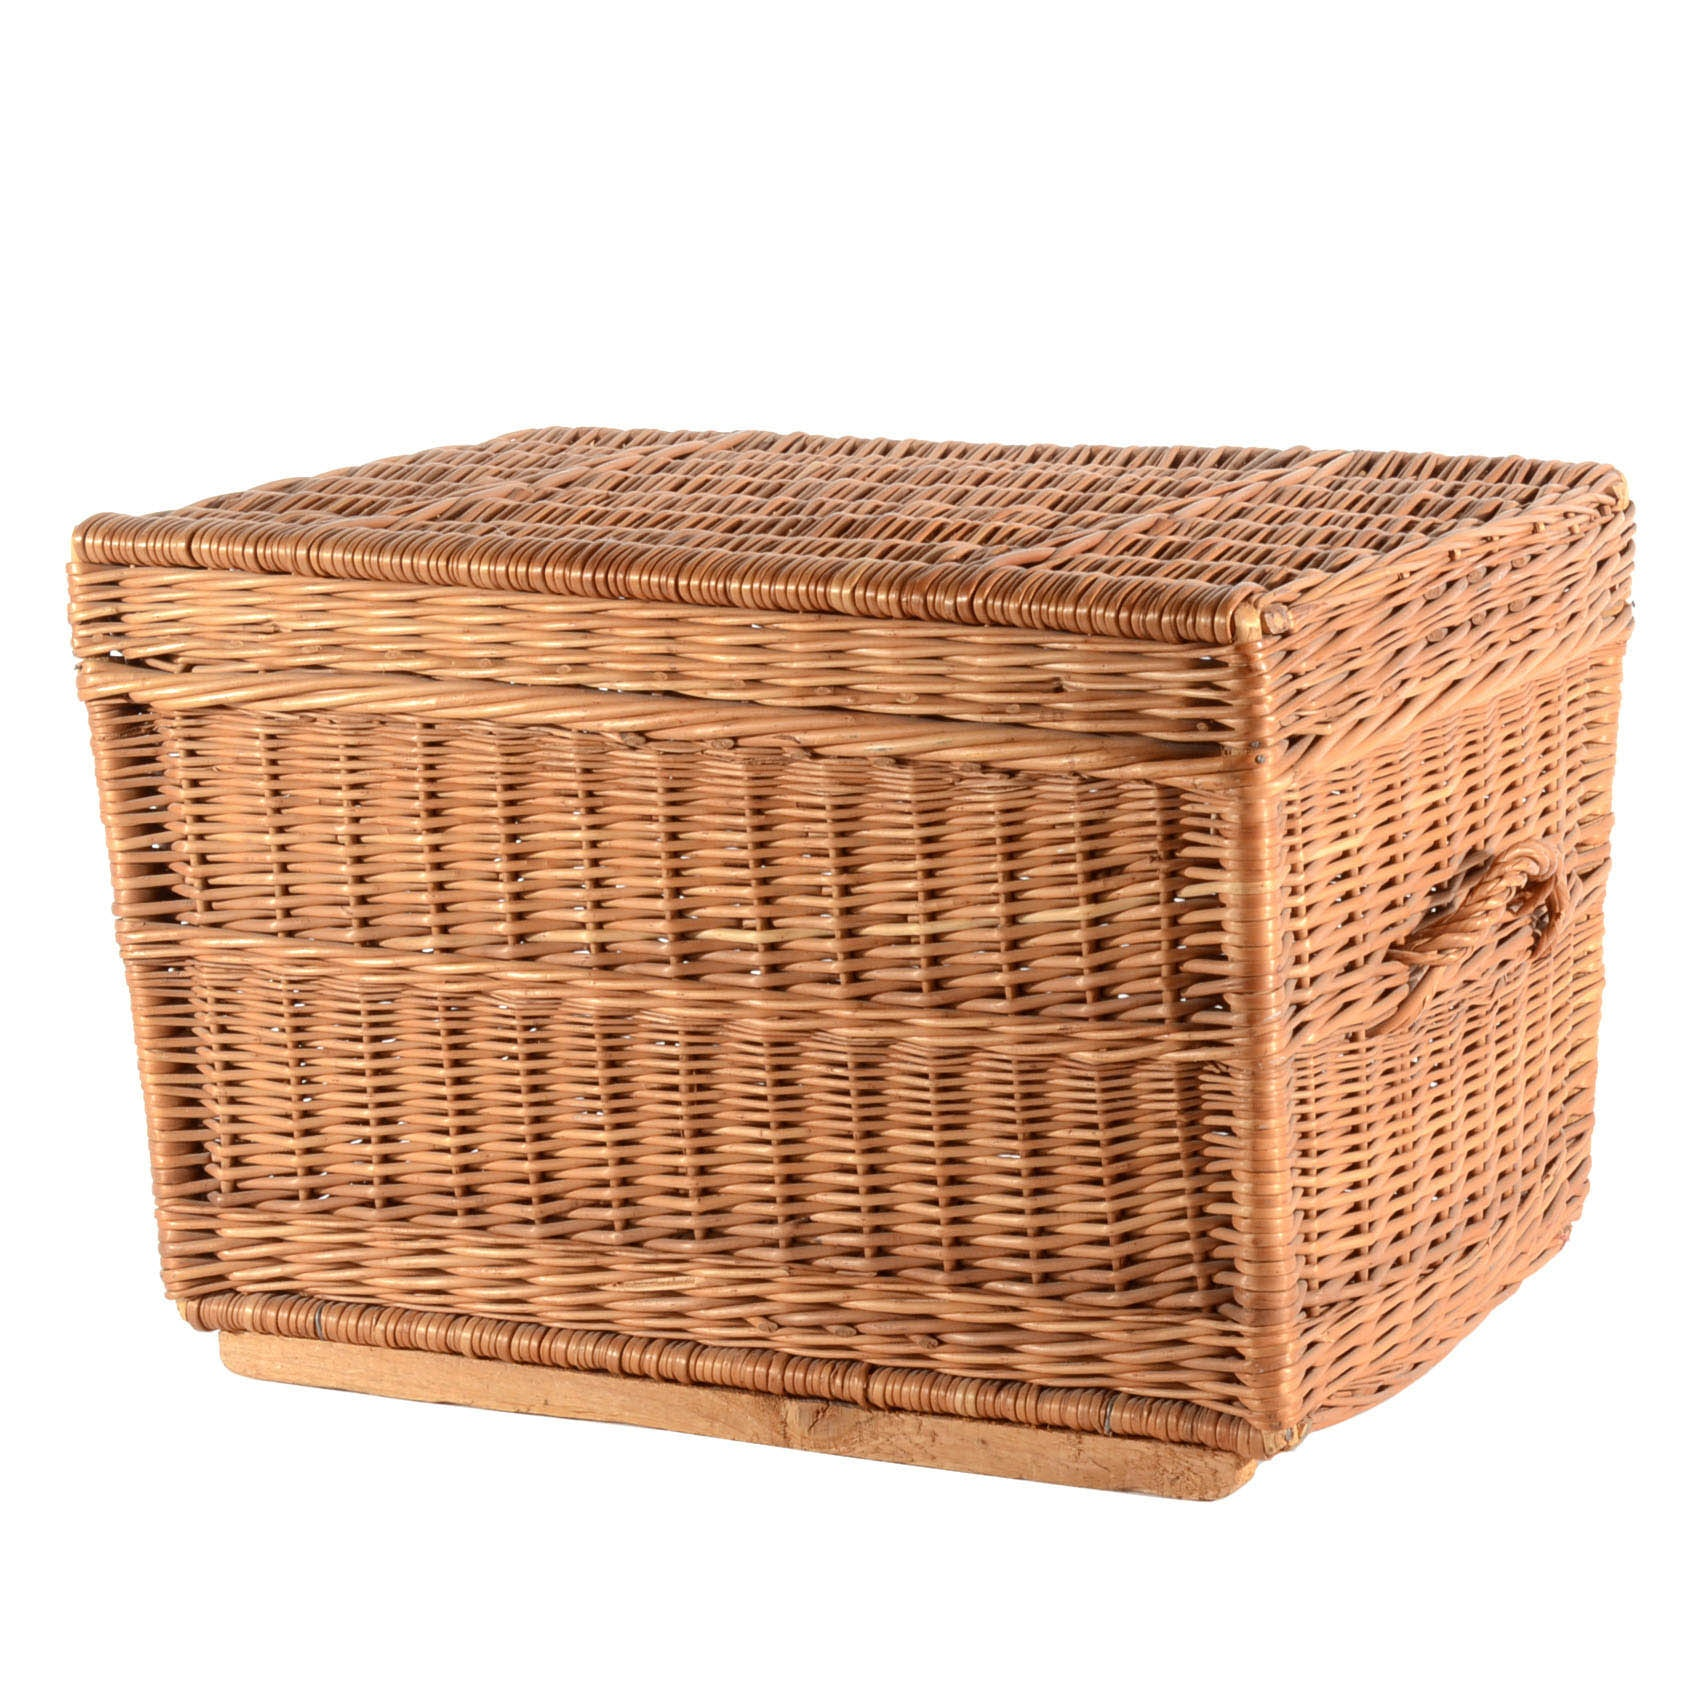 Woven Hinged-Lid Rattan Trunk